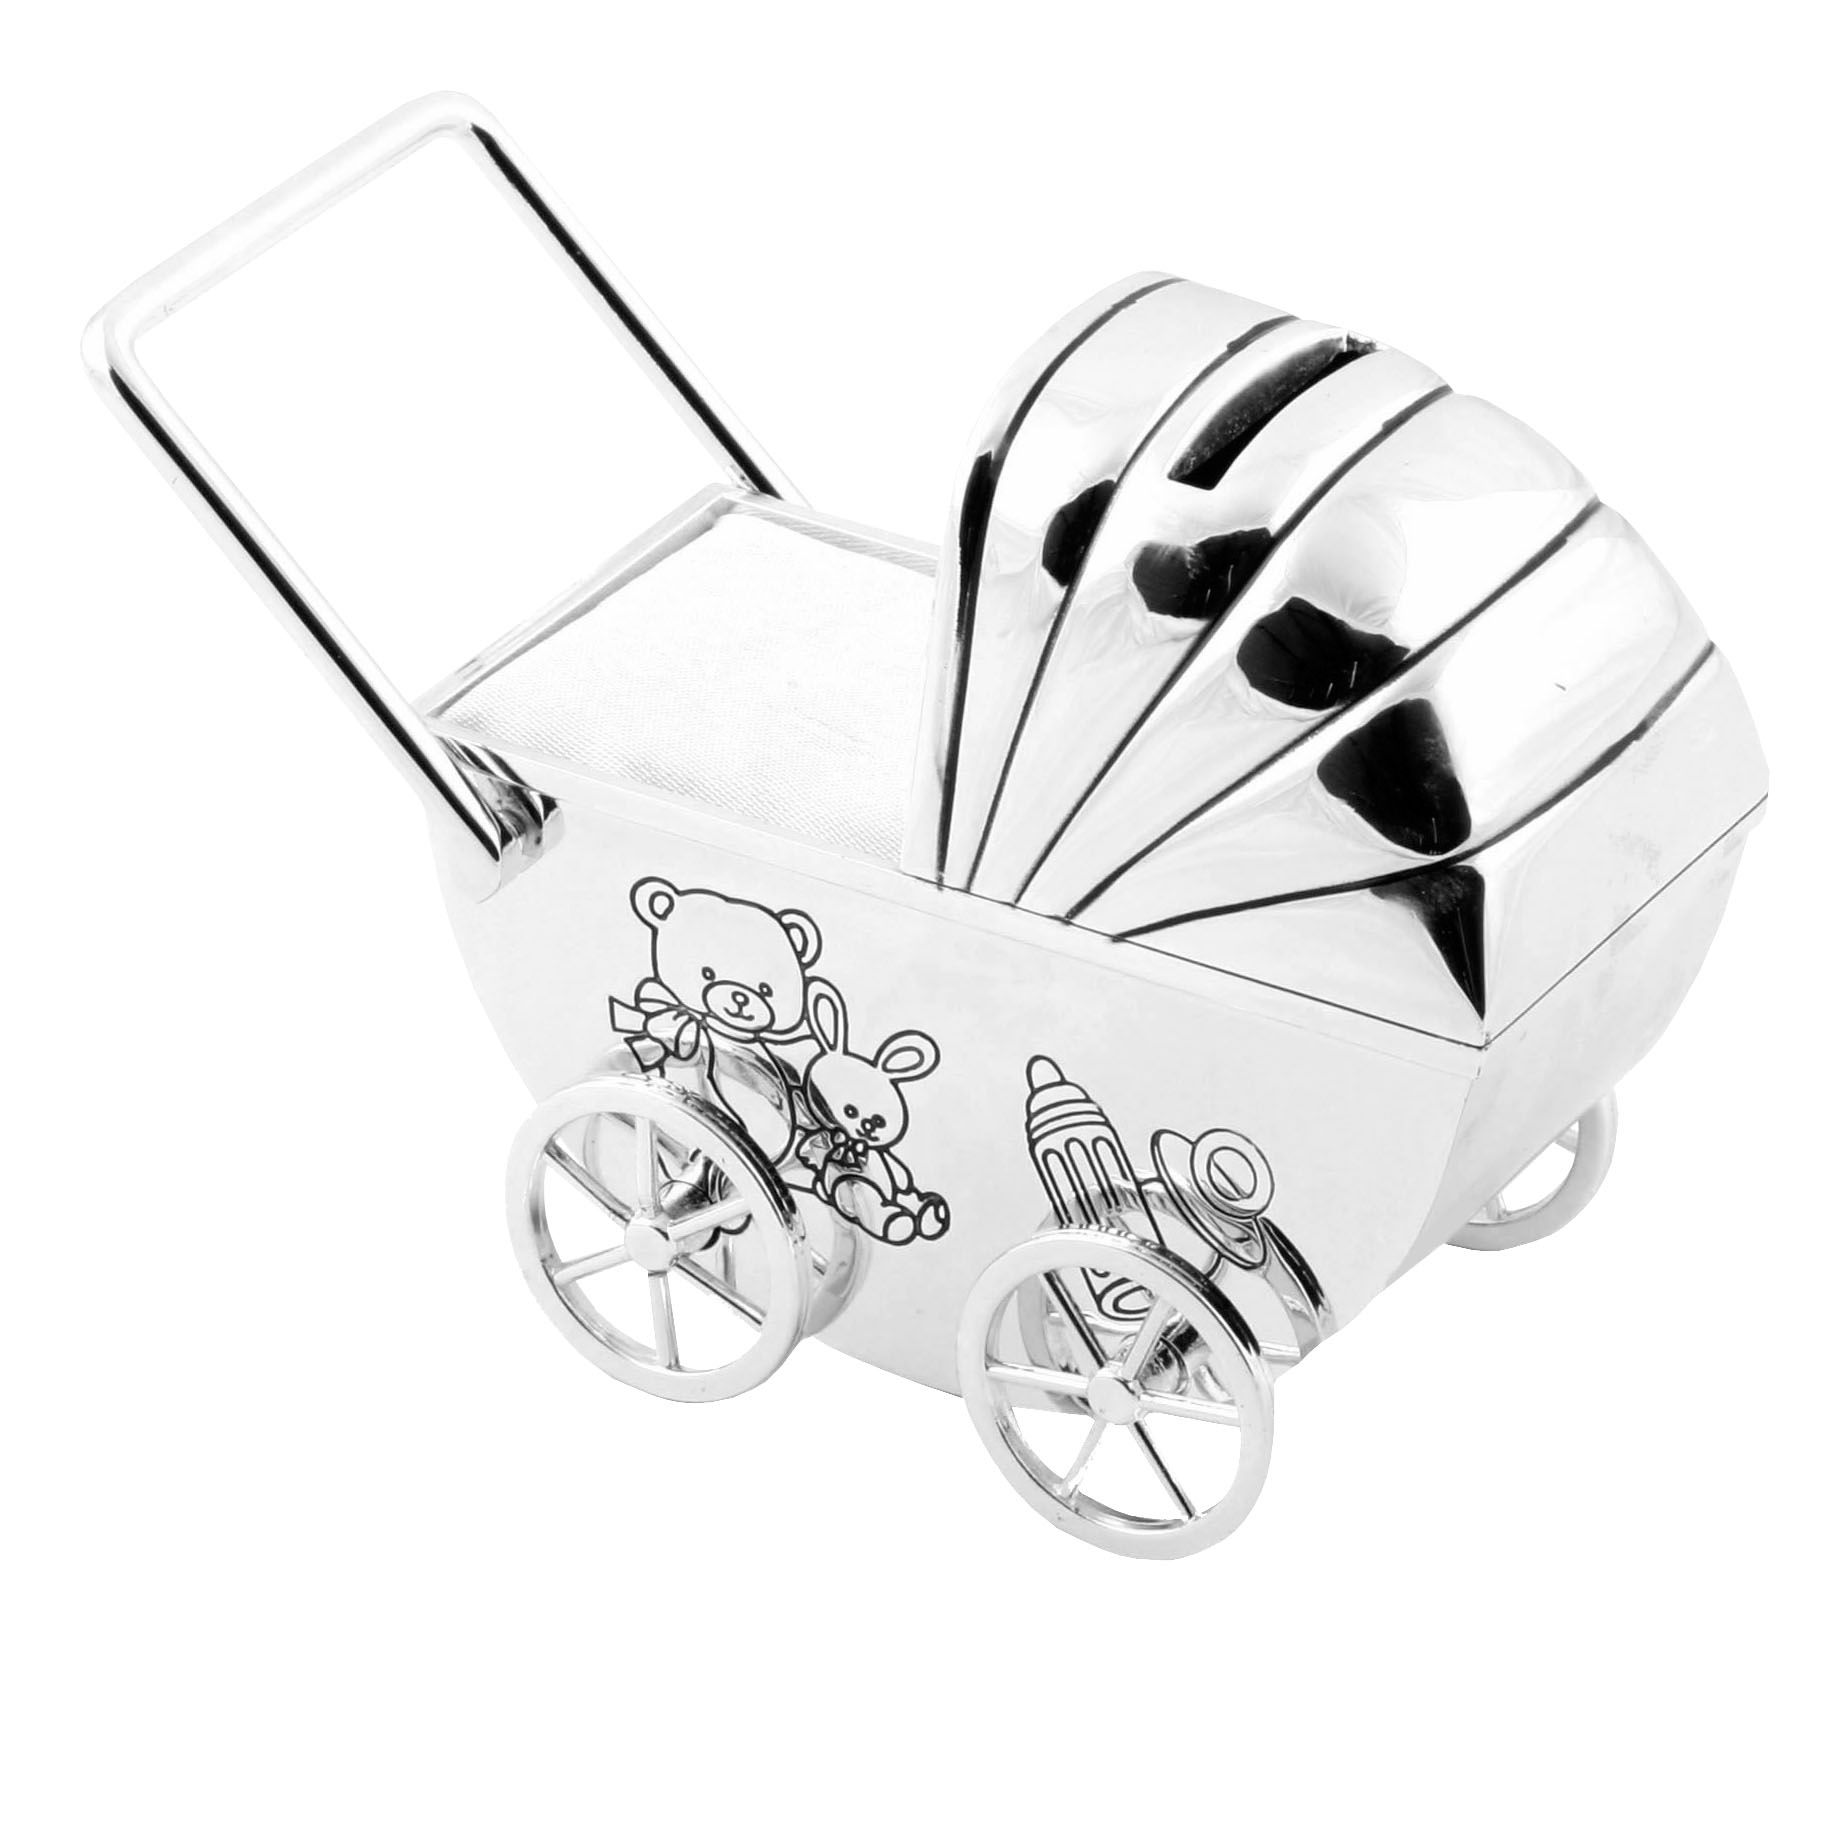 Bambino Bambino S/plated money box - Pram